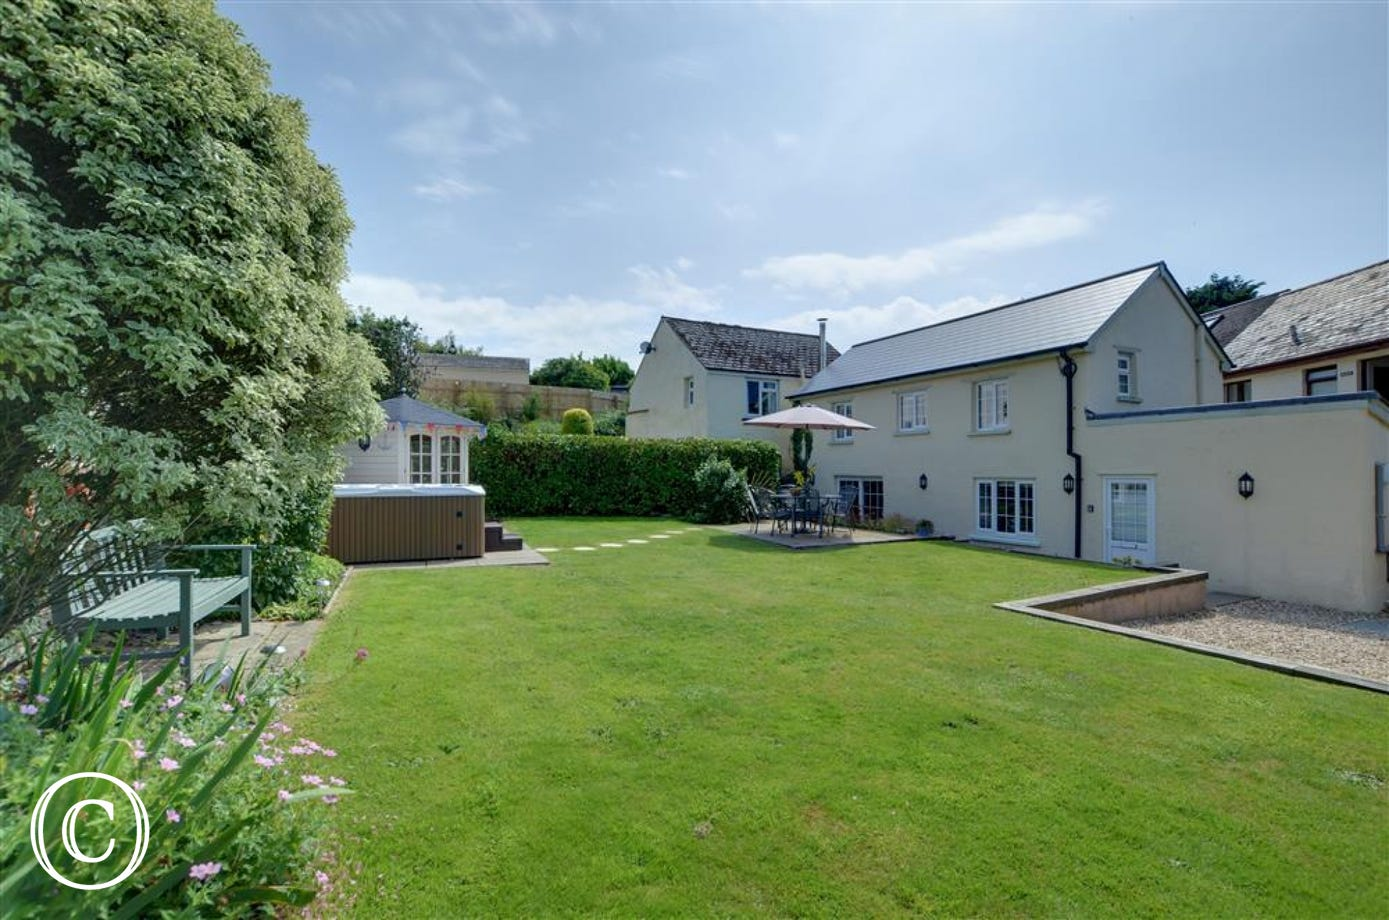 A superb cottage in the centre of the character village of Croyde with ample external space and a hot tub